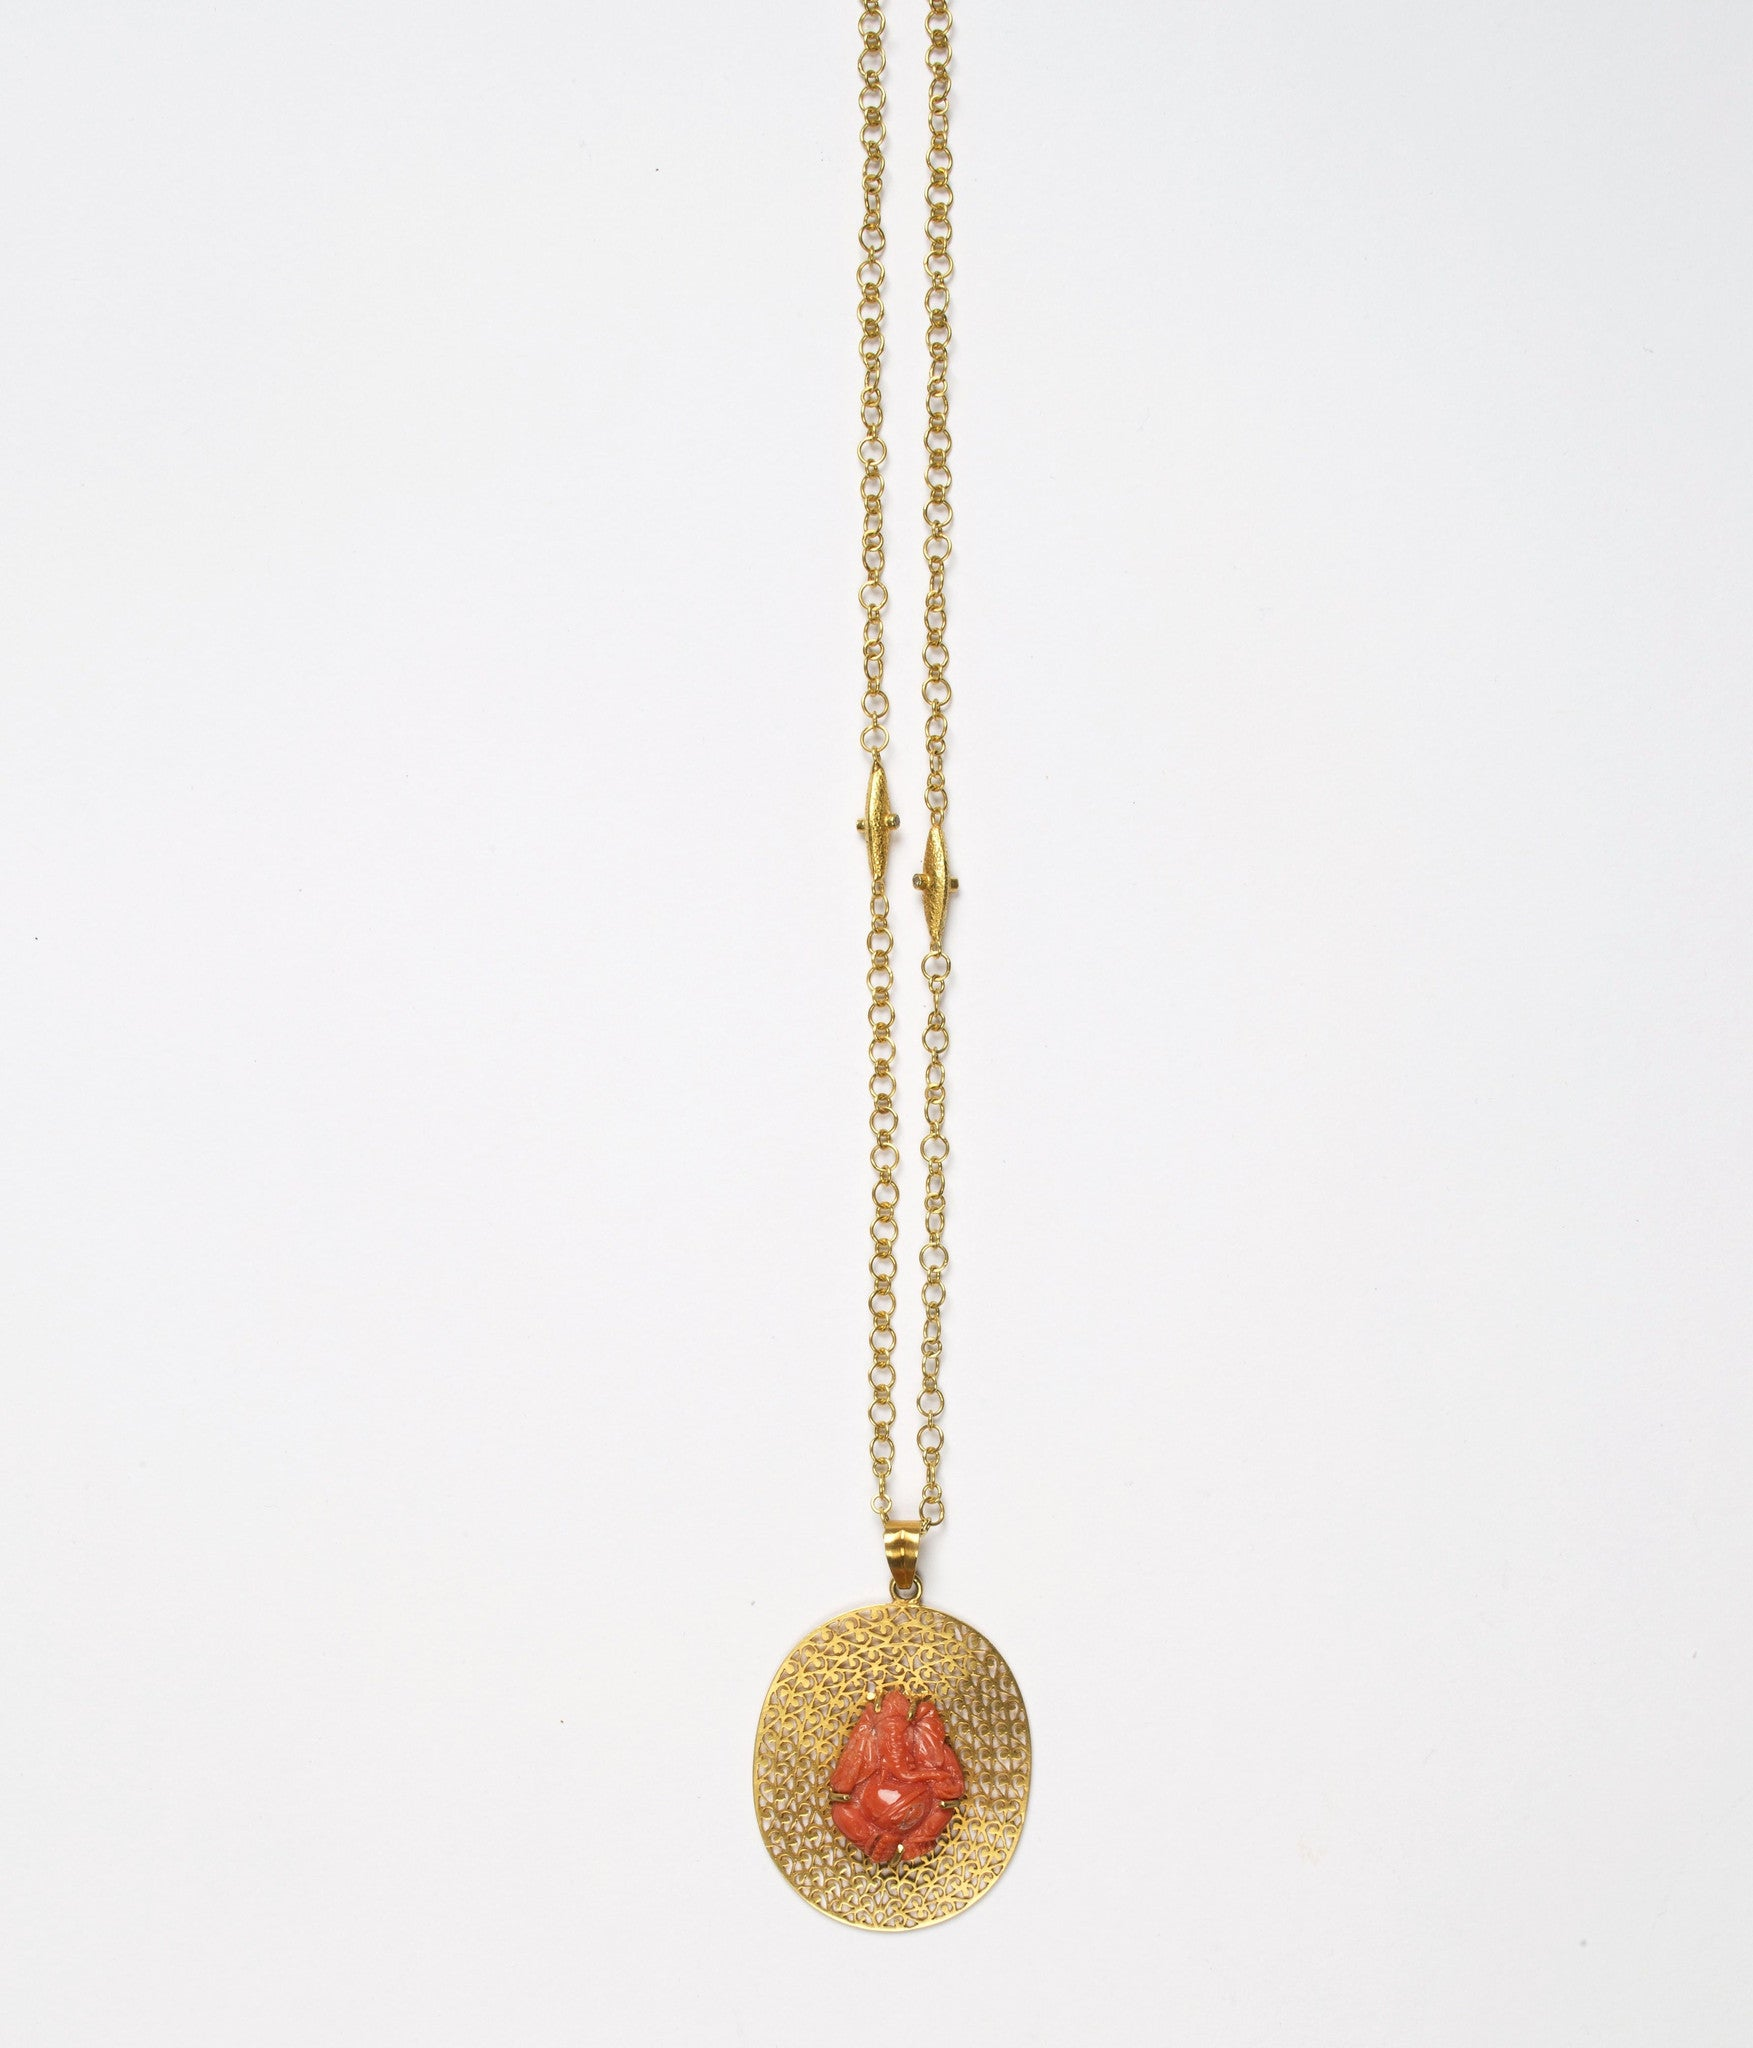 Natural Coral Carving of Ganesh - Pendant in 14K Gold with Signature JS Noor Filligree work - Inspired Luxe